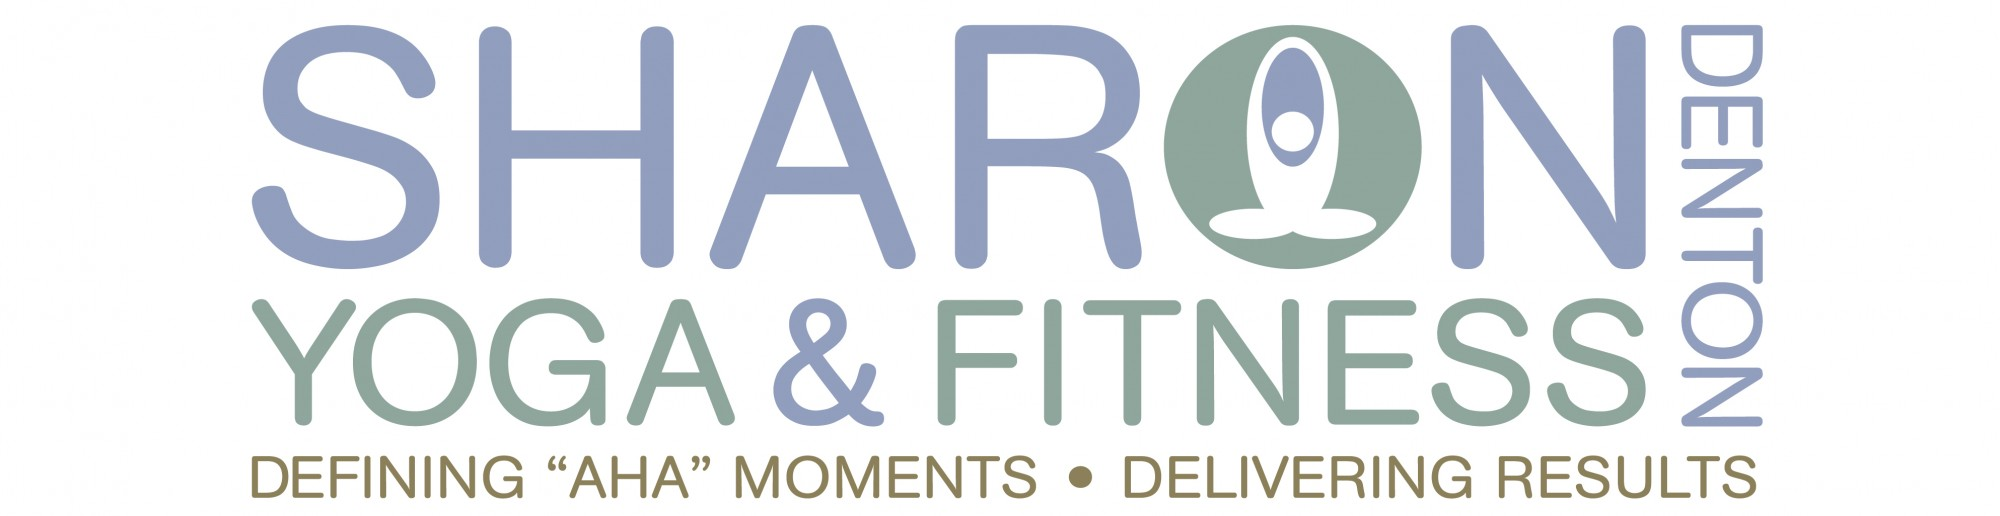 Sharon Denton Yoga & Fitness, LLC